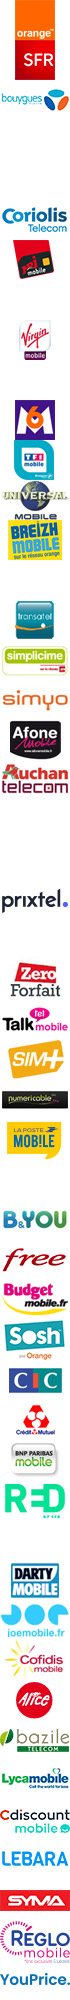 Forfait Orange Tablette 2Go sans engagement